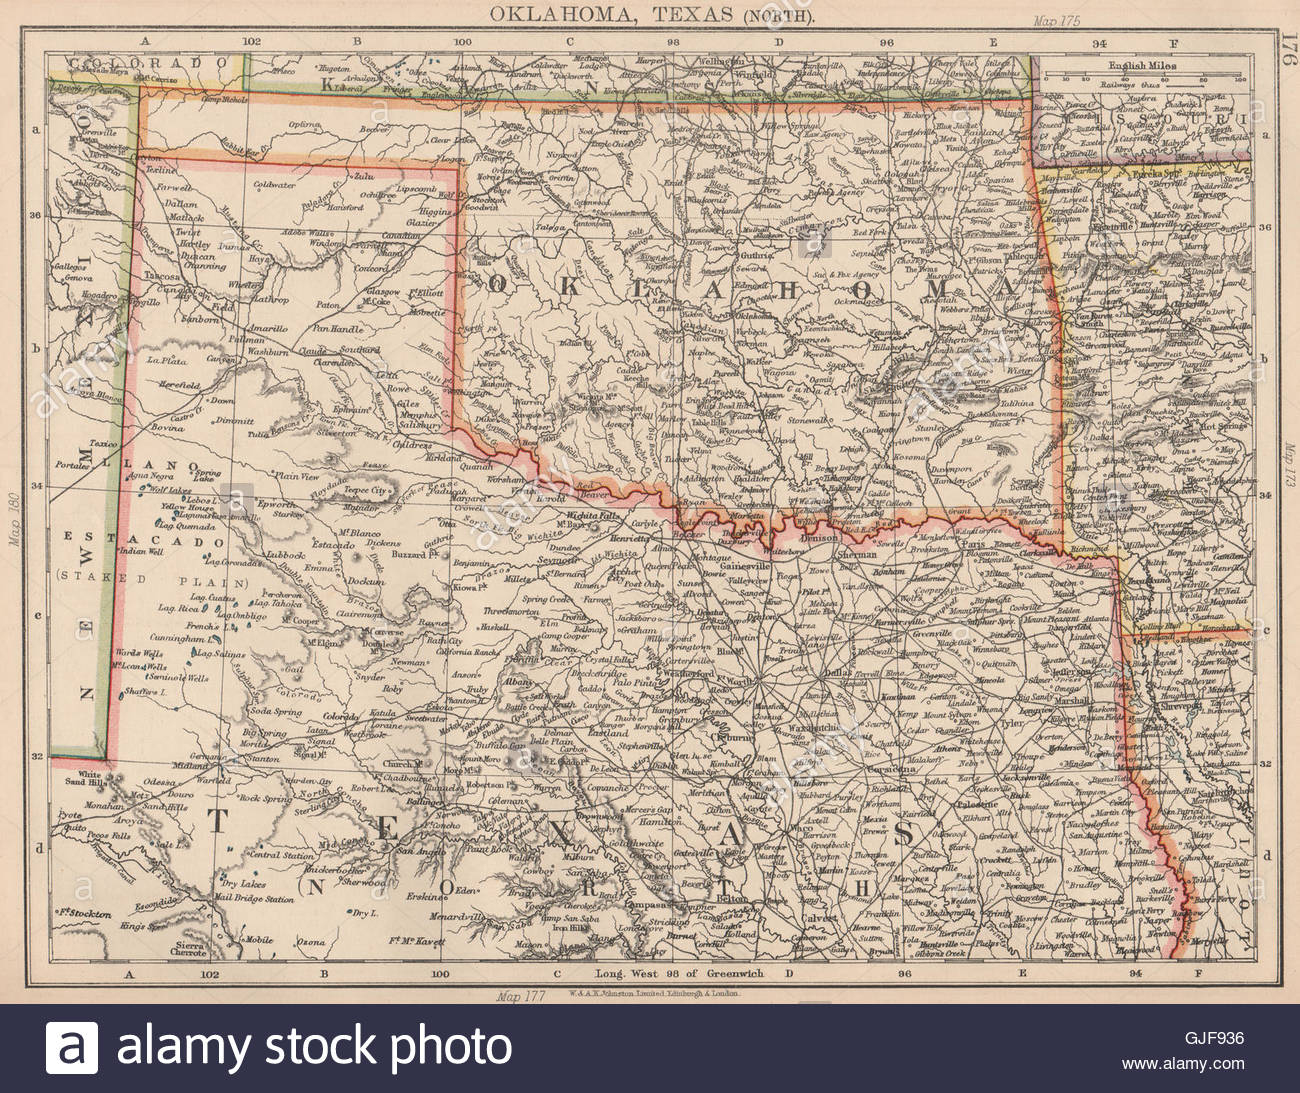 Usa South Central. Oklahoma & North Texas. Railroads. Johnston, 1906 - Map Of Oklahoma And Texas